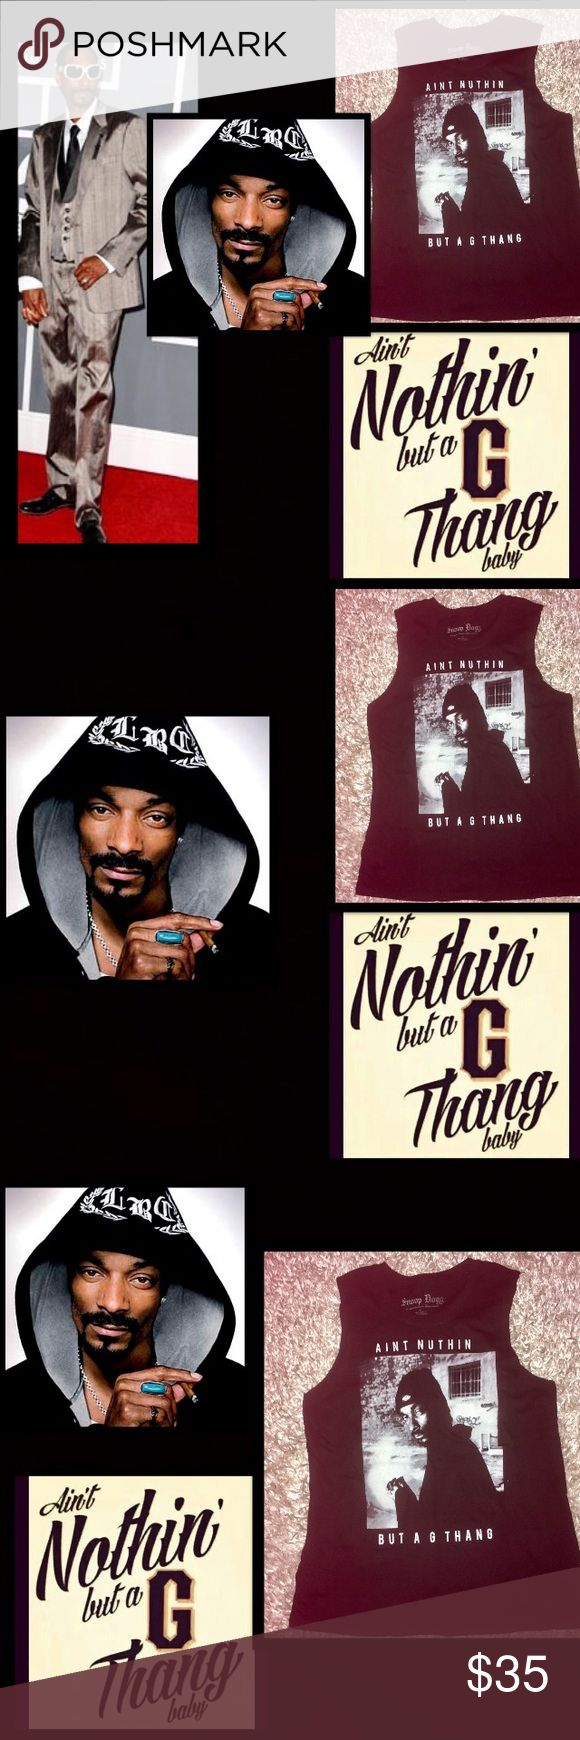 "Spanky Clothing• Snoop Dogg•G Thang Tank Cordozar Calvin Broadus Jr.(born10/20,1971)Official Snoop Dogg Tha Doggfather Spanky's Clothing Licensed 1,2,3and to the4,Snoop Doggy Dogg&Dr.Dre is at the doorReady2make an entrance,so back on up('Cause Uknow we're about to rip shit up)Give me the microphone first so I can bust,like a bubble,Compton&Long Beach 2gether Now U know you're in trouble""Ain't nothing but a G thang,Baby""•phrase when a bro is blue balled,upset over a girl.""thang""being the…"